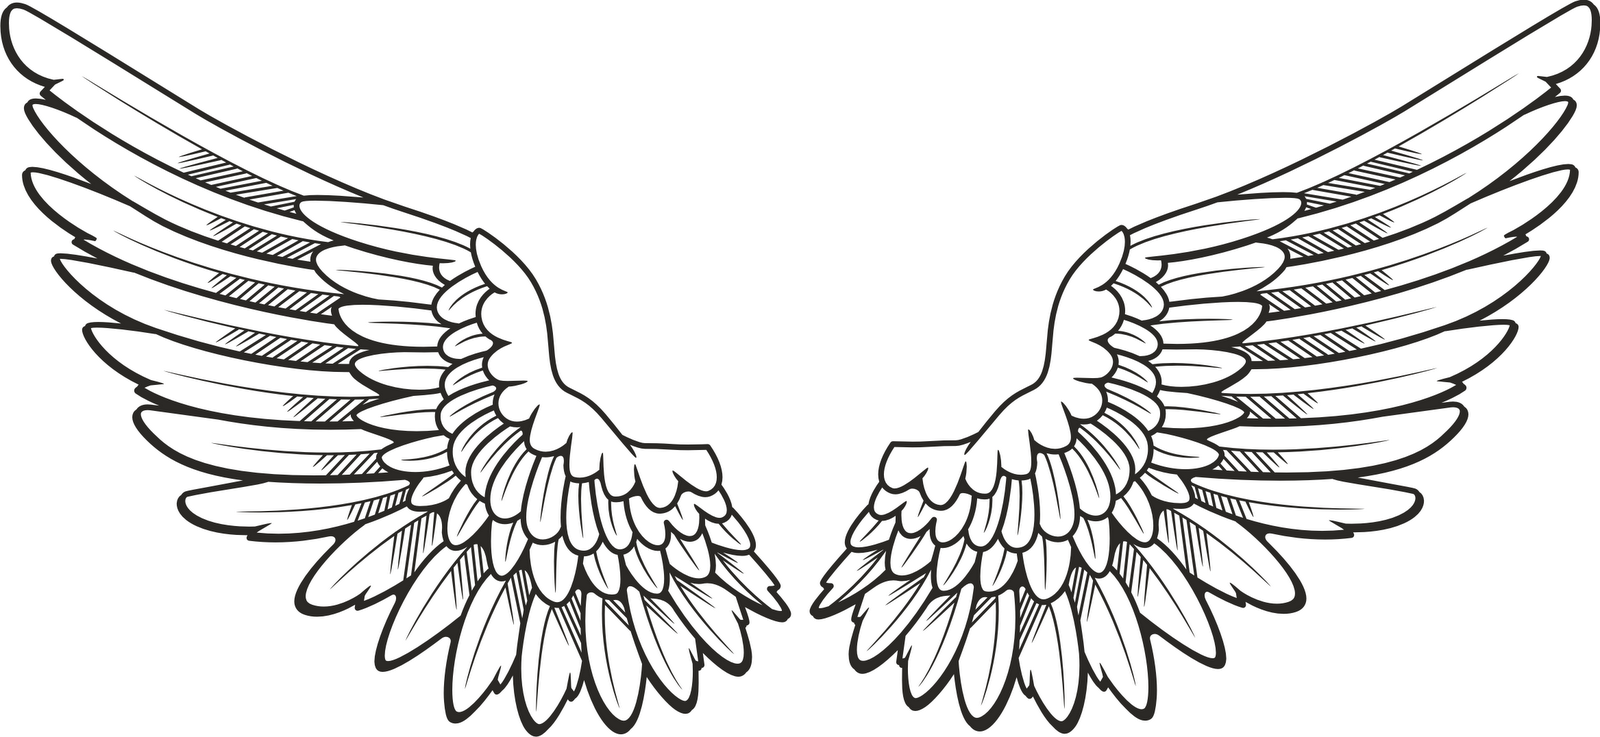 Angel wings clipart images clipart transparent library Free Wings Cliparts, Download Free Clip Art, Free Clip Art on ... clipart transparent library